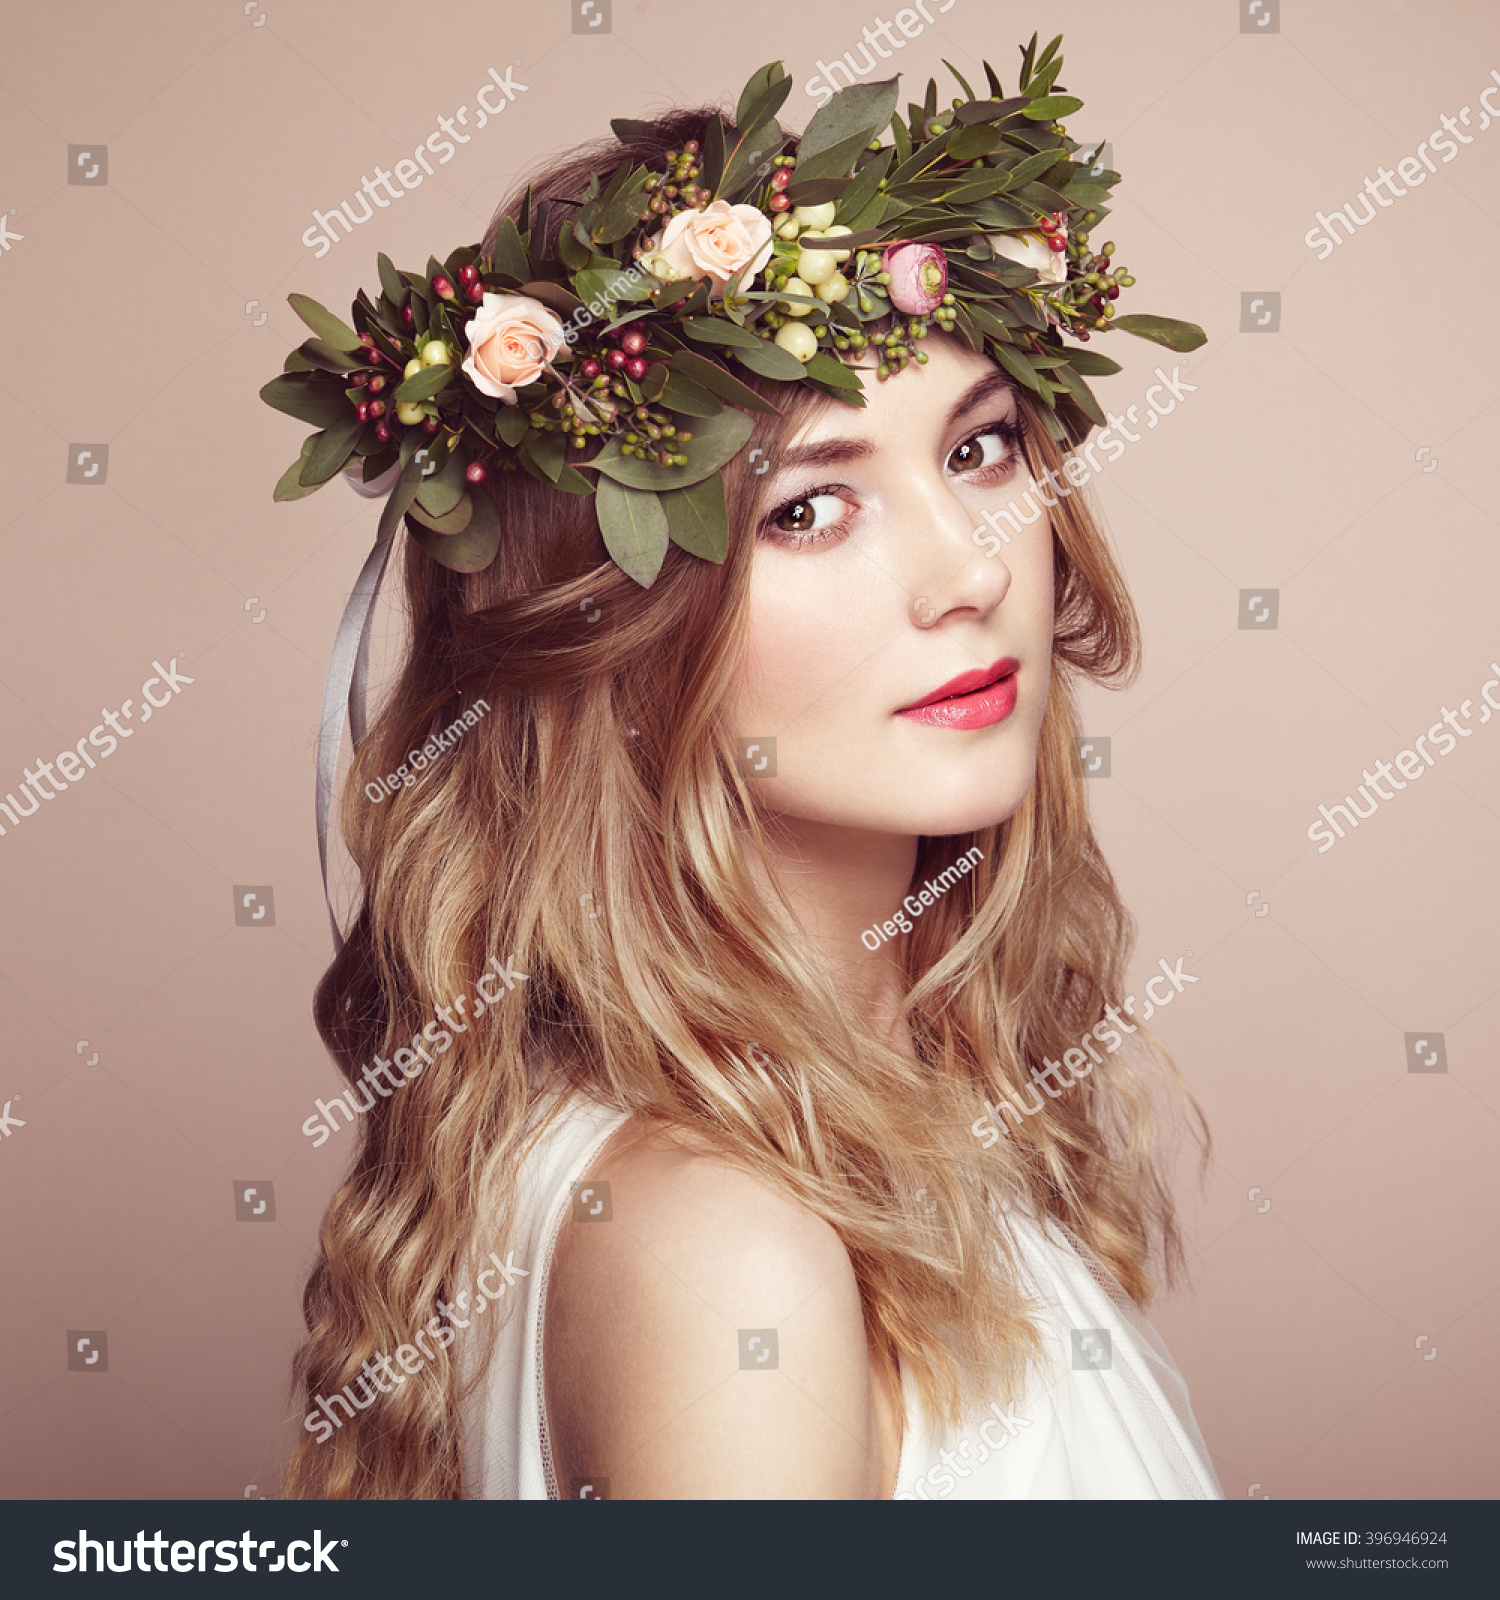 Beautiful blonde woman with flower wreath on her head beauty girl beautiful blonde woman with flower wreath on her head beauty girl with flowers hairstyle perfect makeup beauty fashion spring woman ez canvas izmirmasajfo